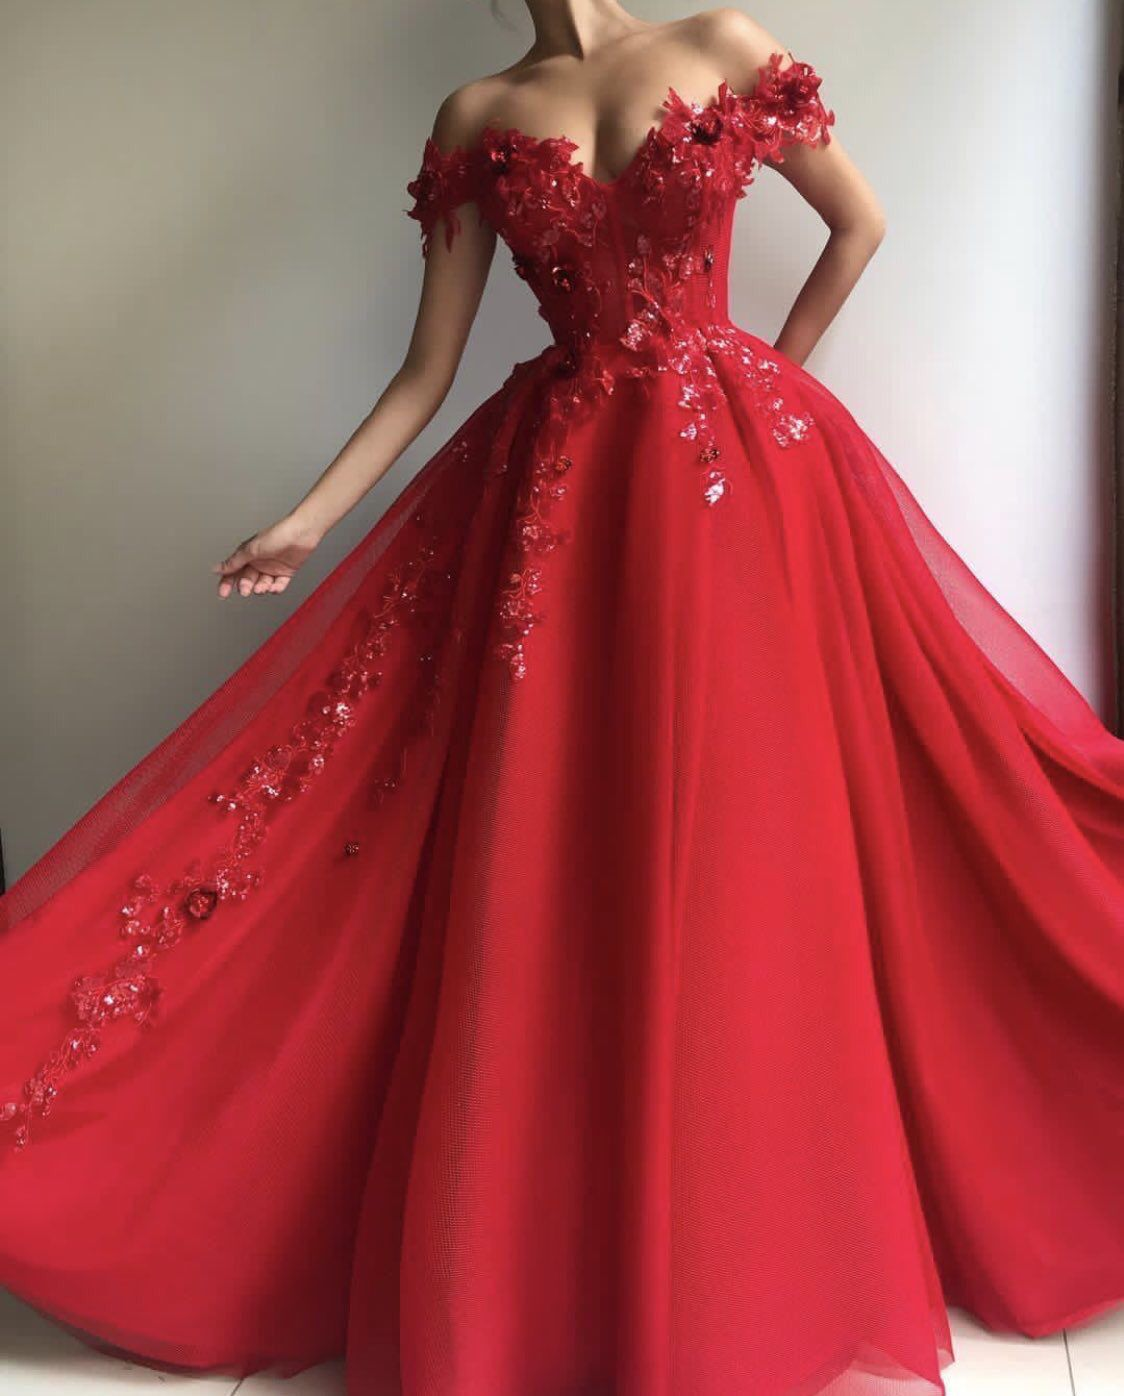 Pin by Marie Rosa on Formal wear  A line prom dresses, Affordable